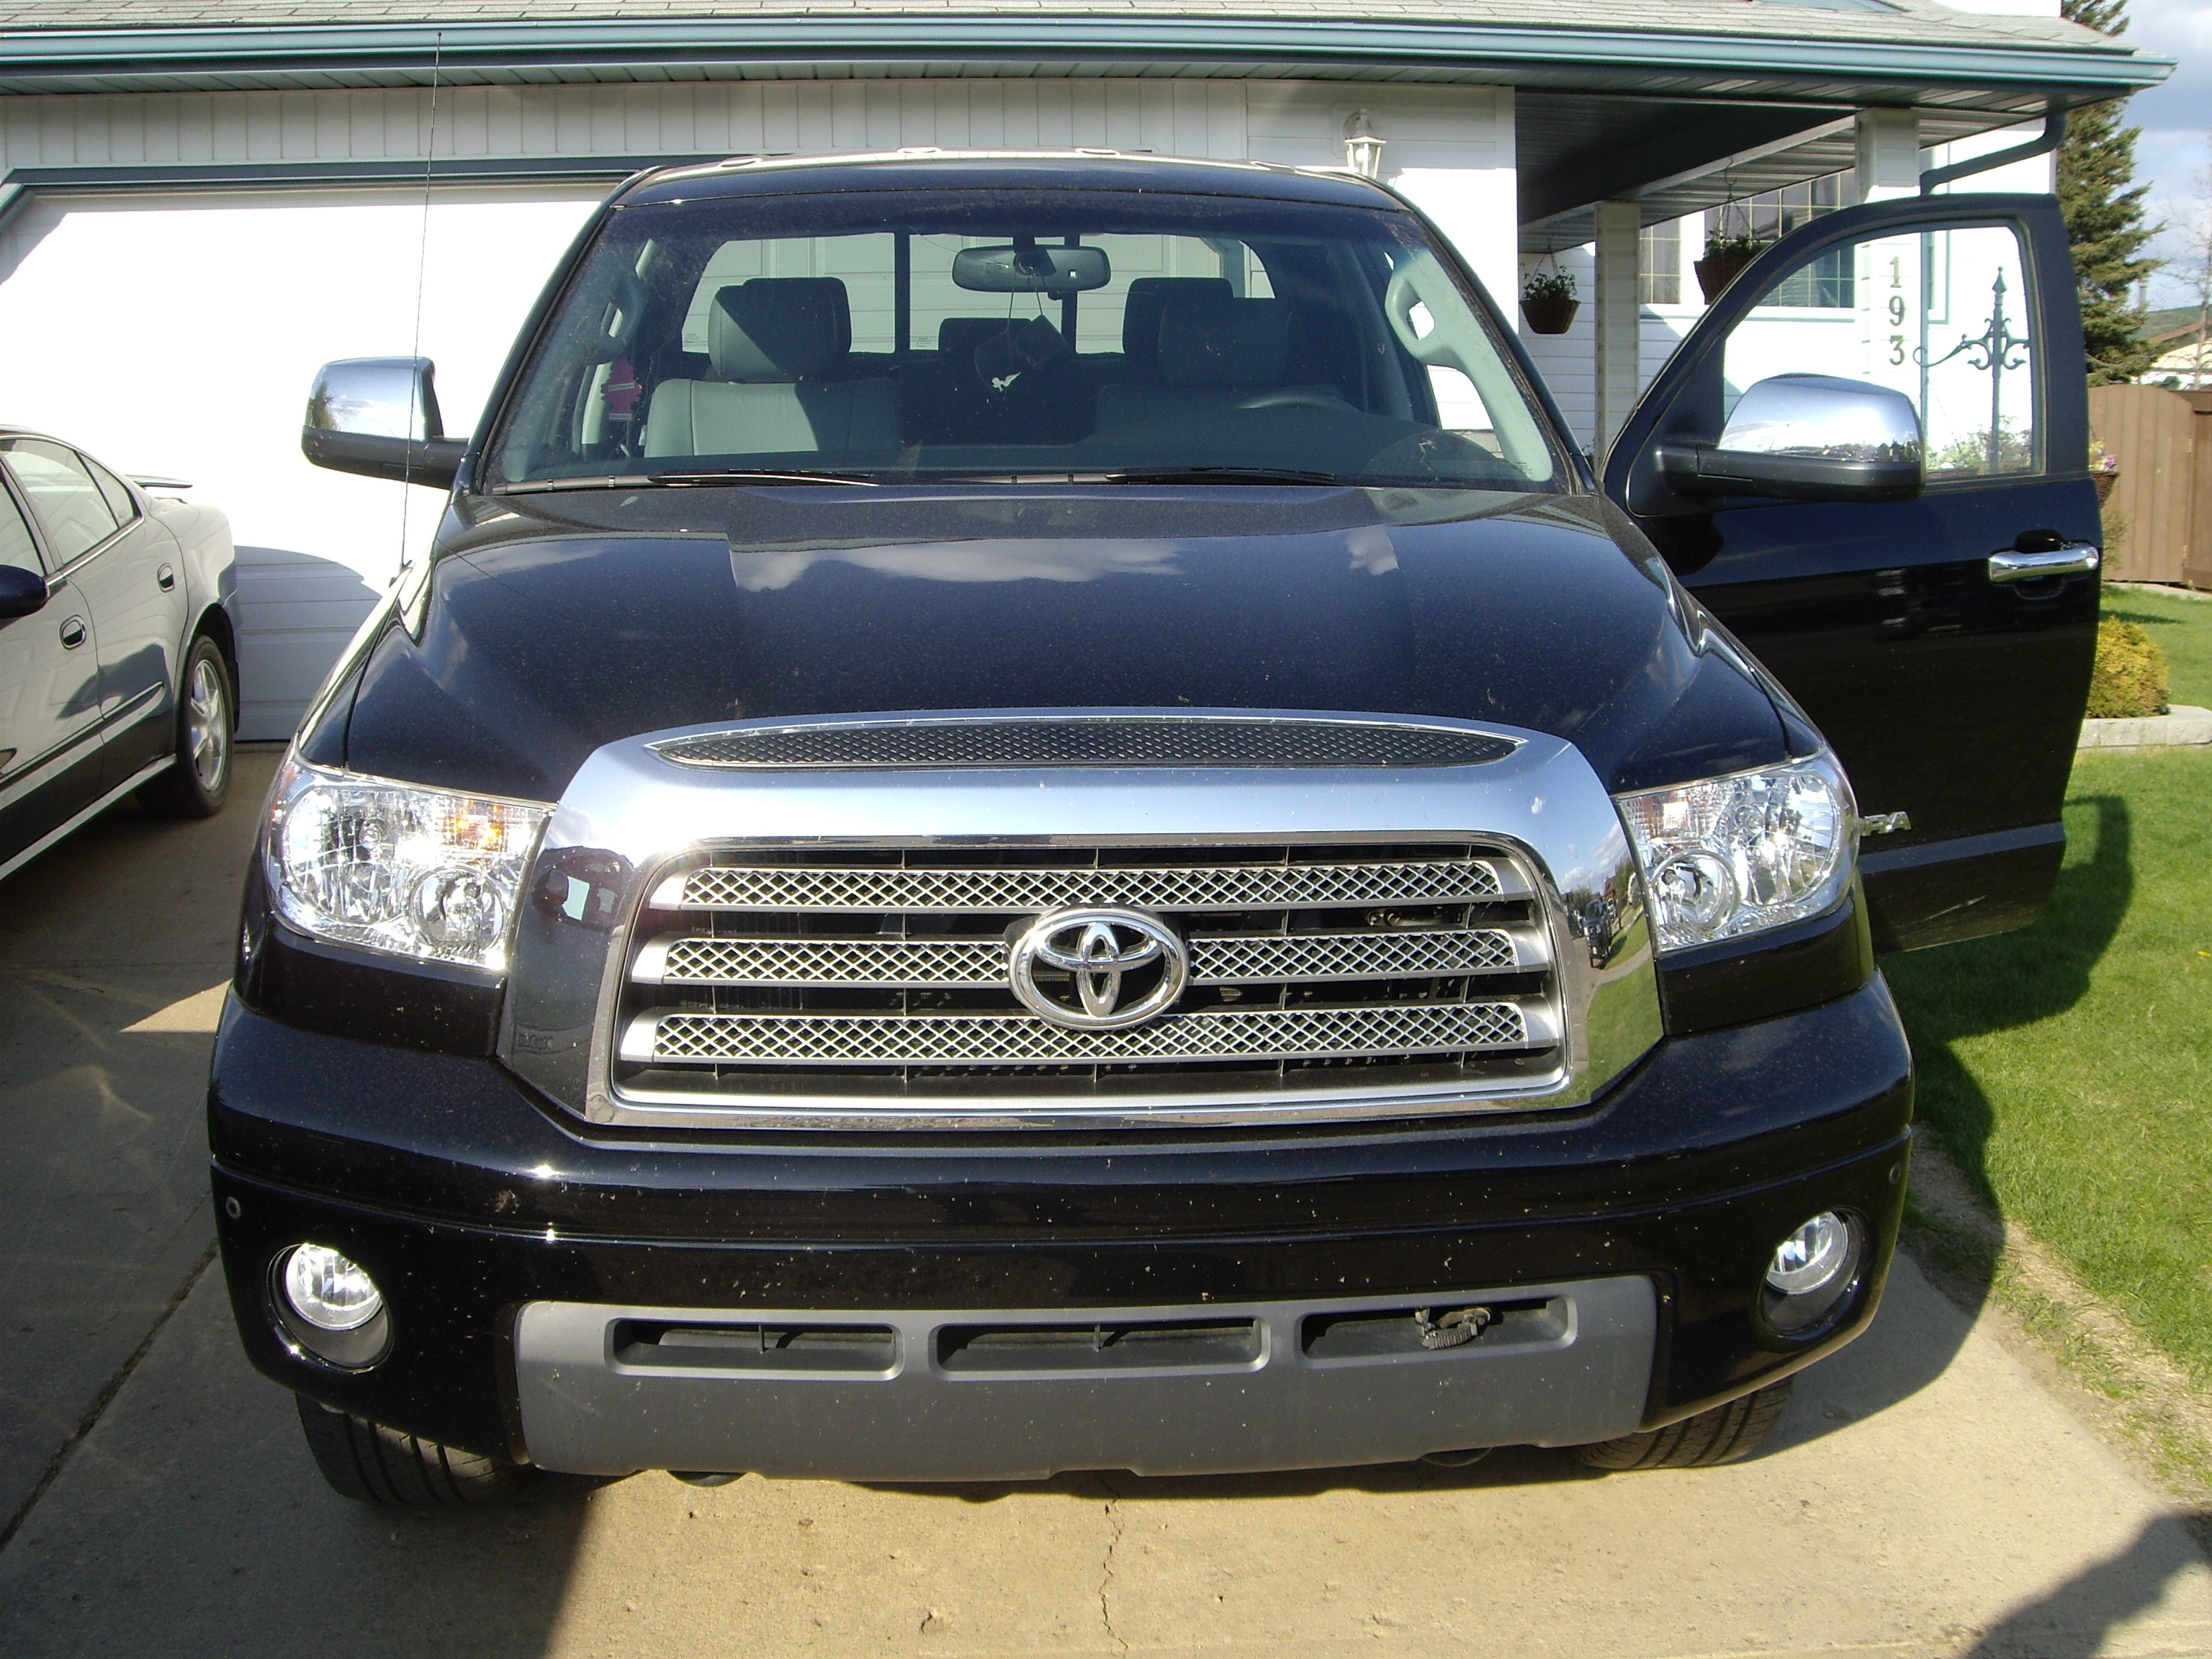 chad07 2009 toyota tundra double cablimited specs photos modification info at cardomain. Black Bedroom Furniture Sets. Home Design Ideas